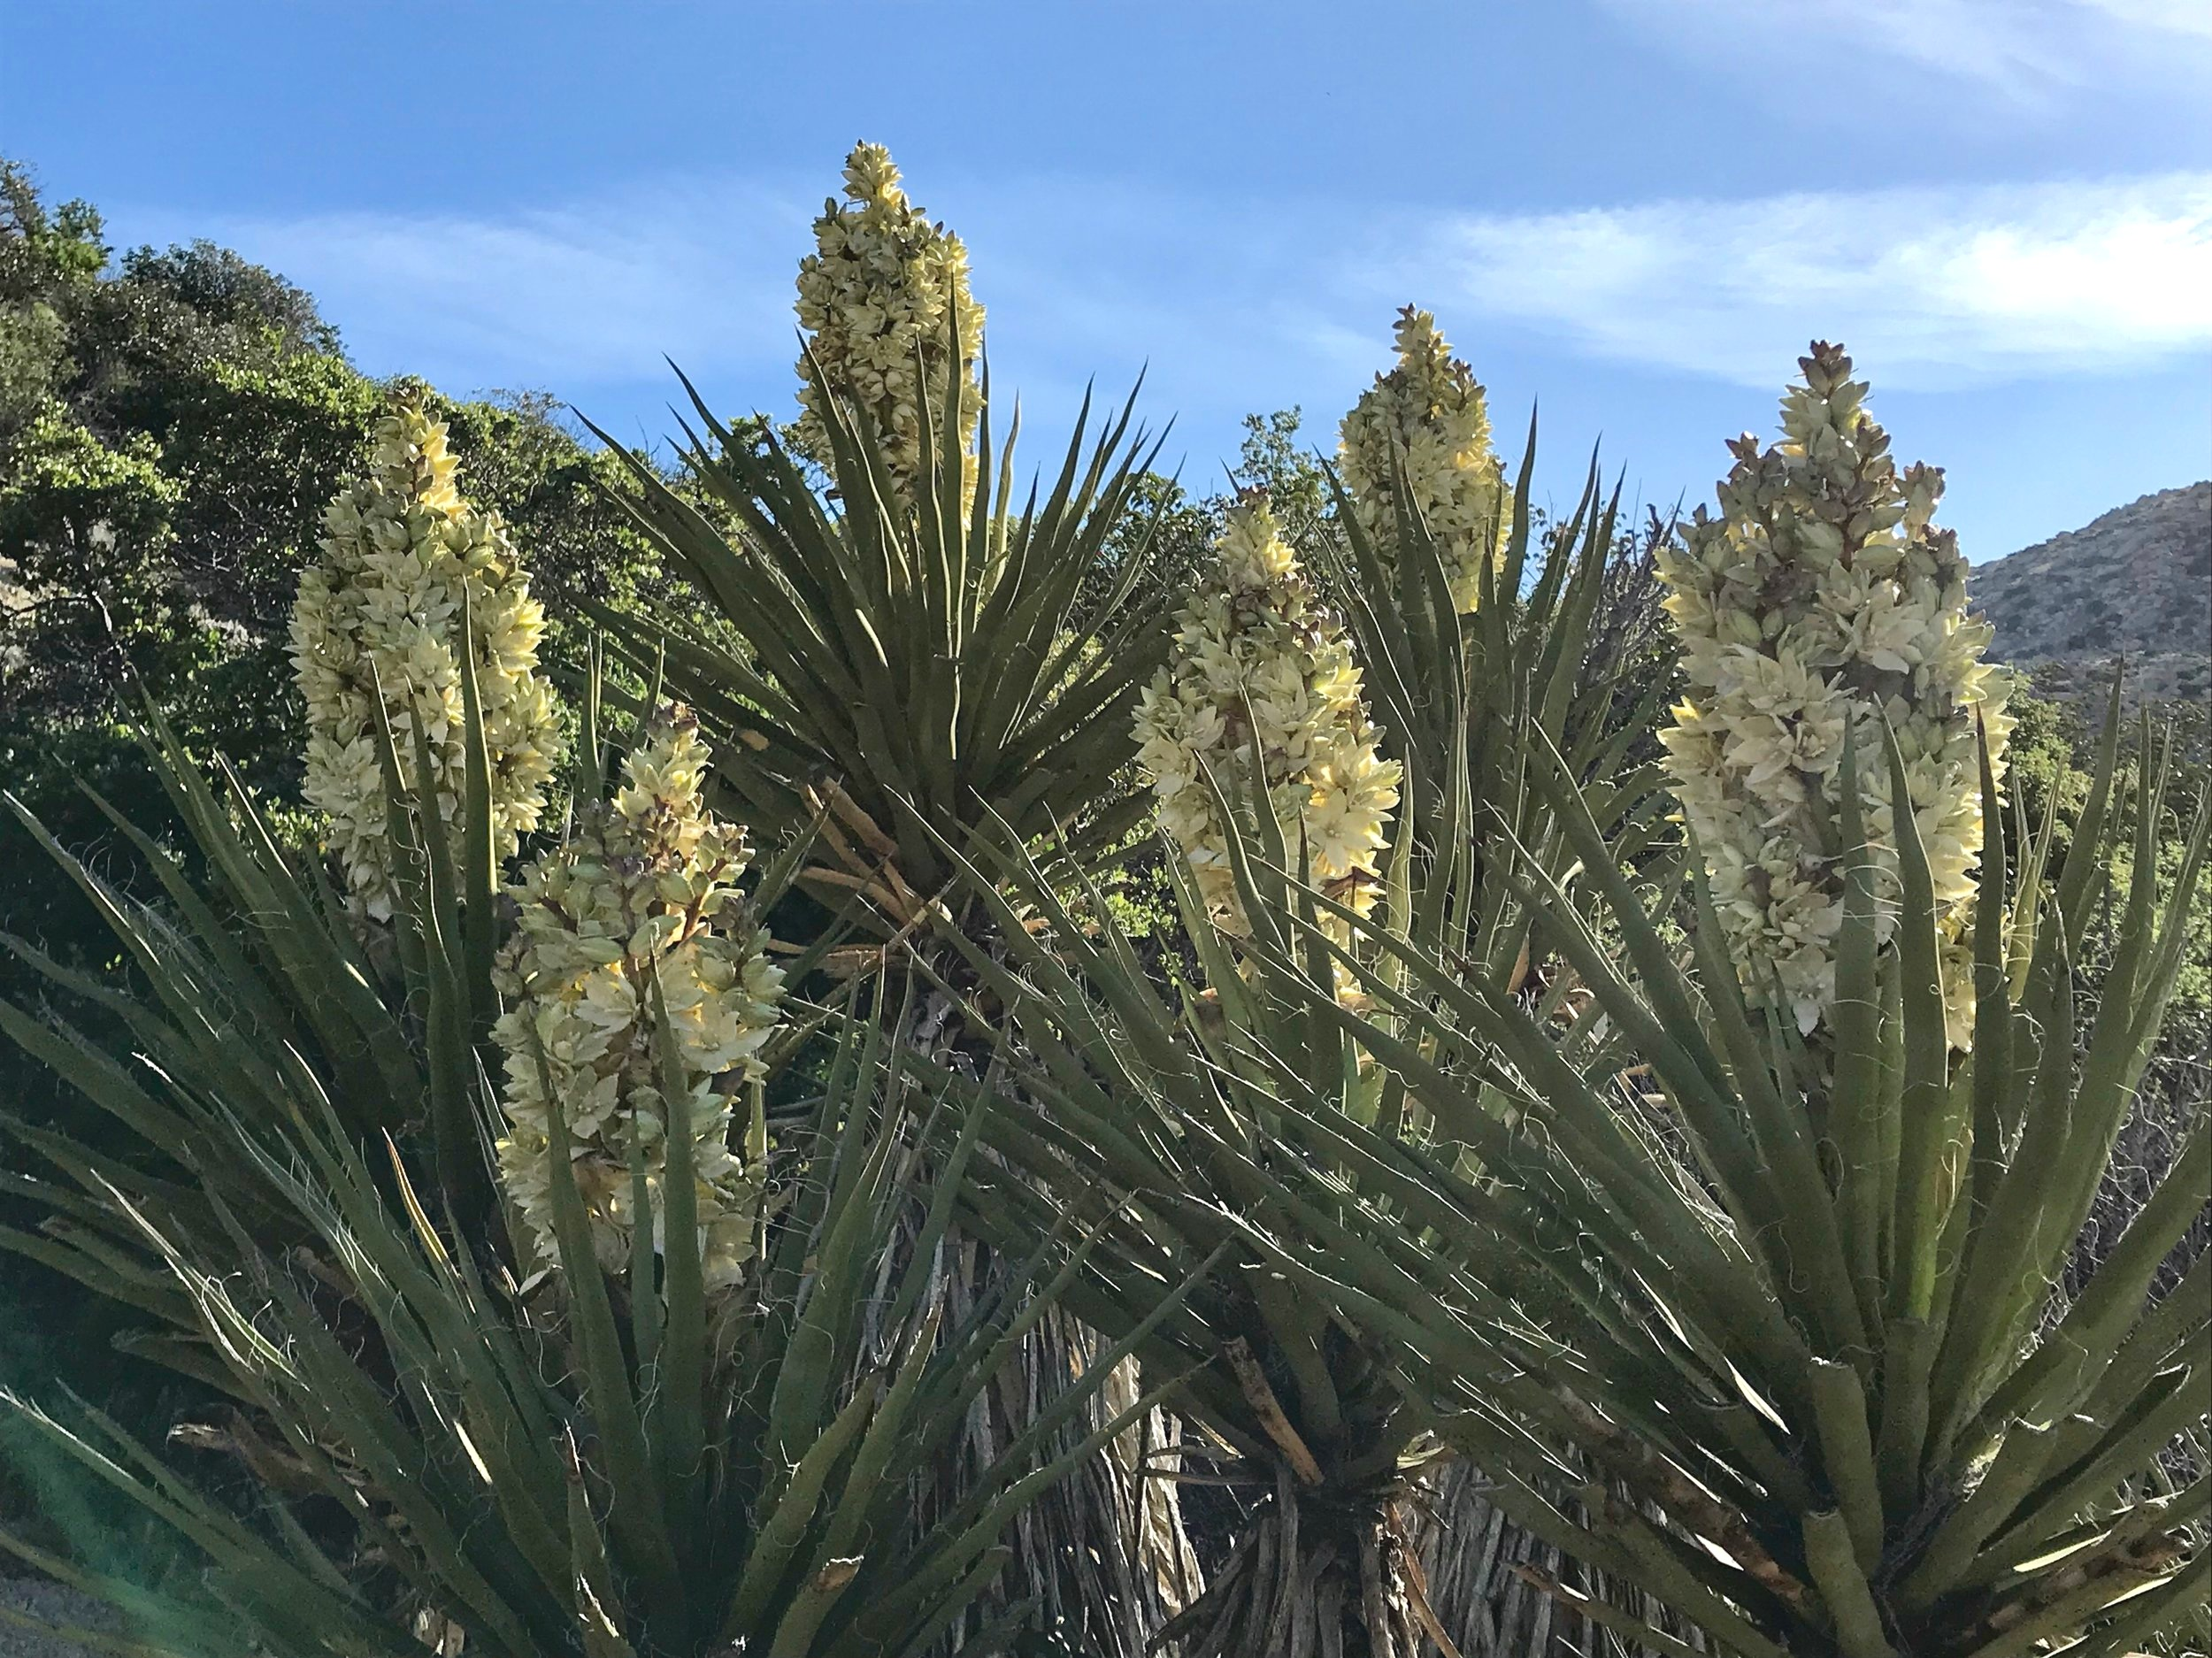 Beautiful blooming yucca flowers in the Anza-Borrego Desert